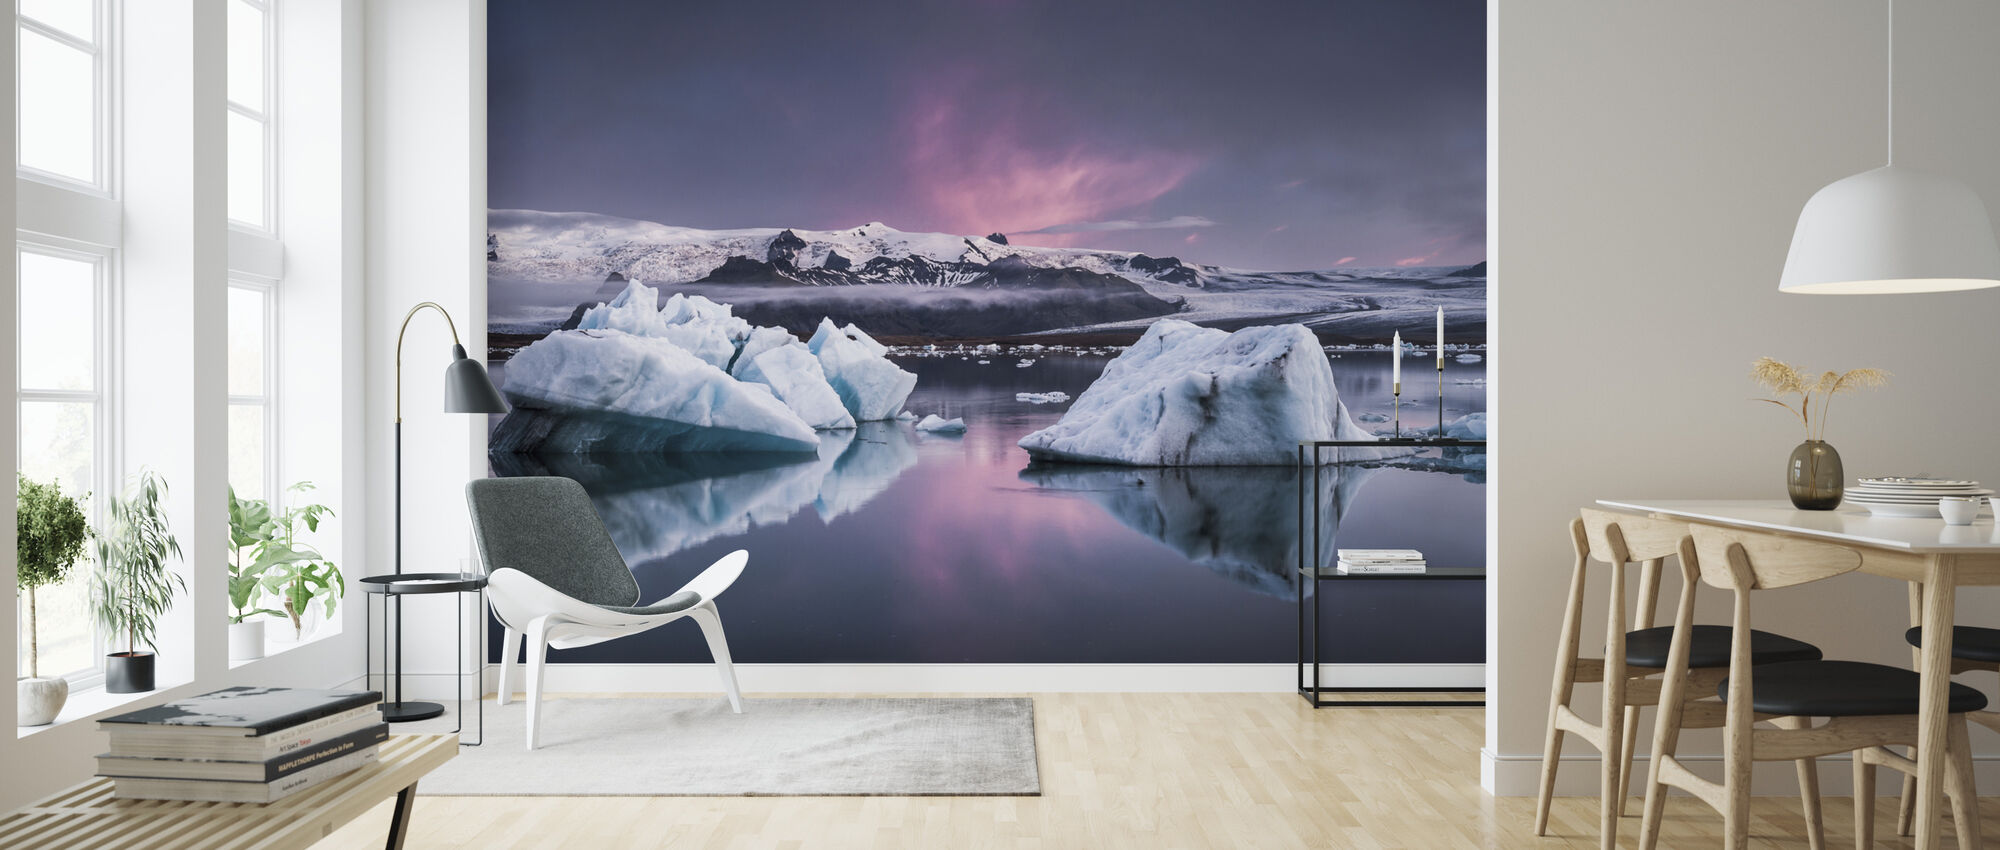 The Glacier Lagoon - Wallpaper - Living Room